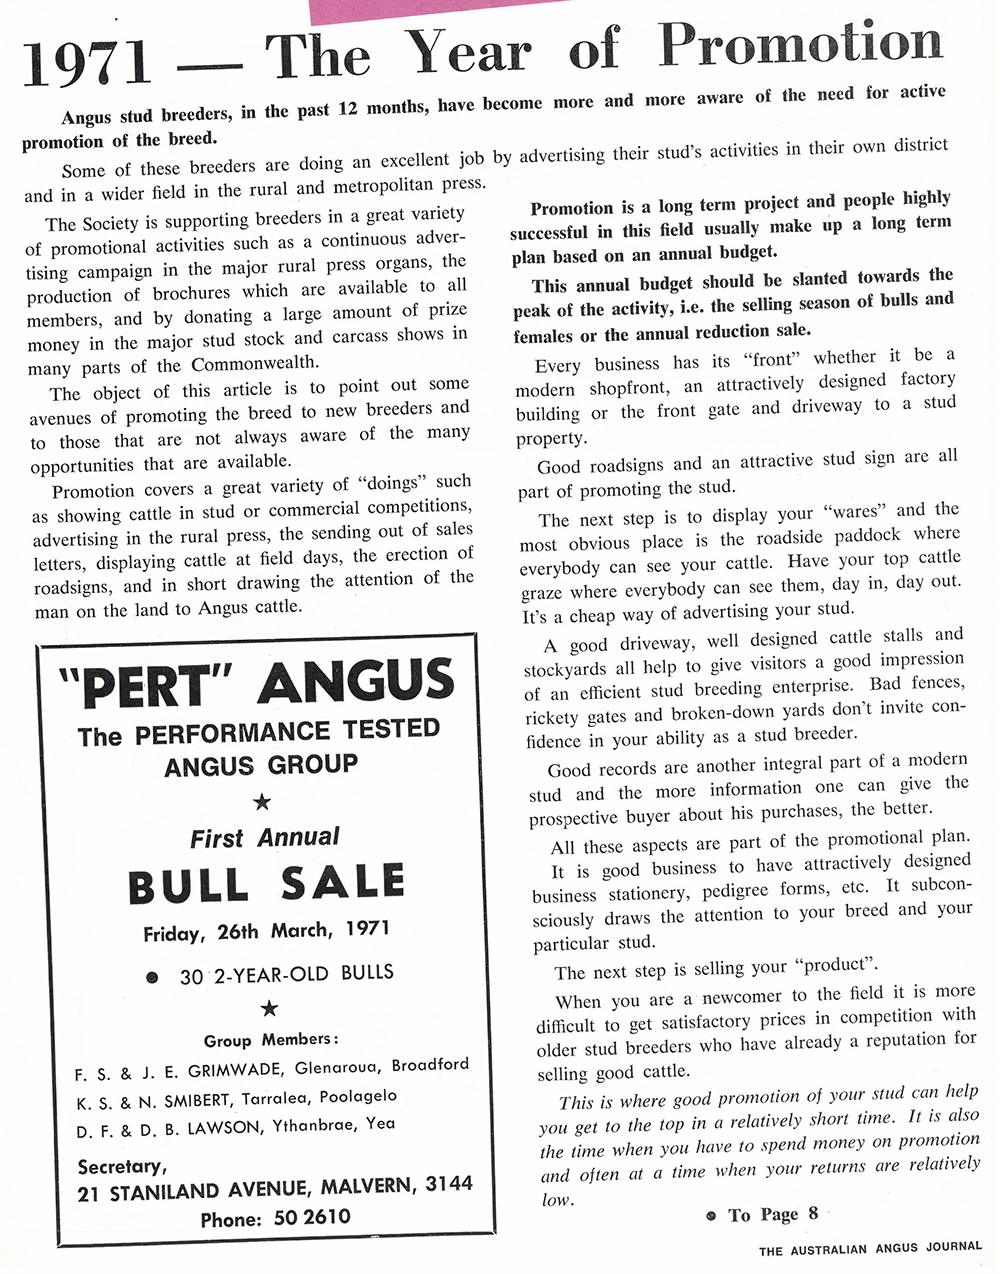 1971 Angus Journal